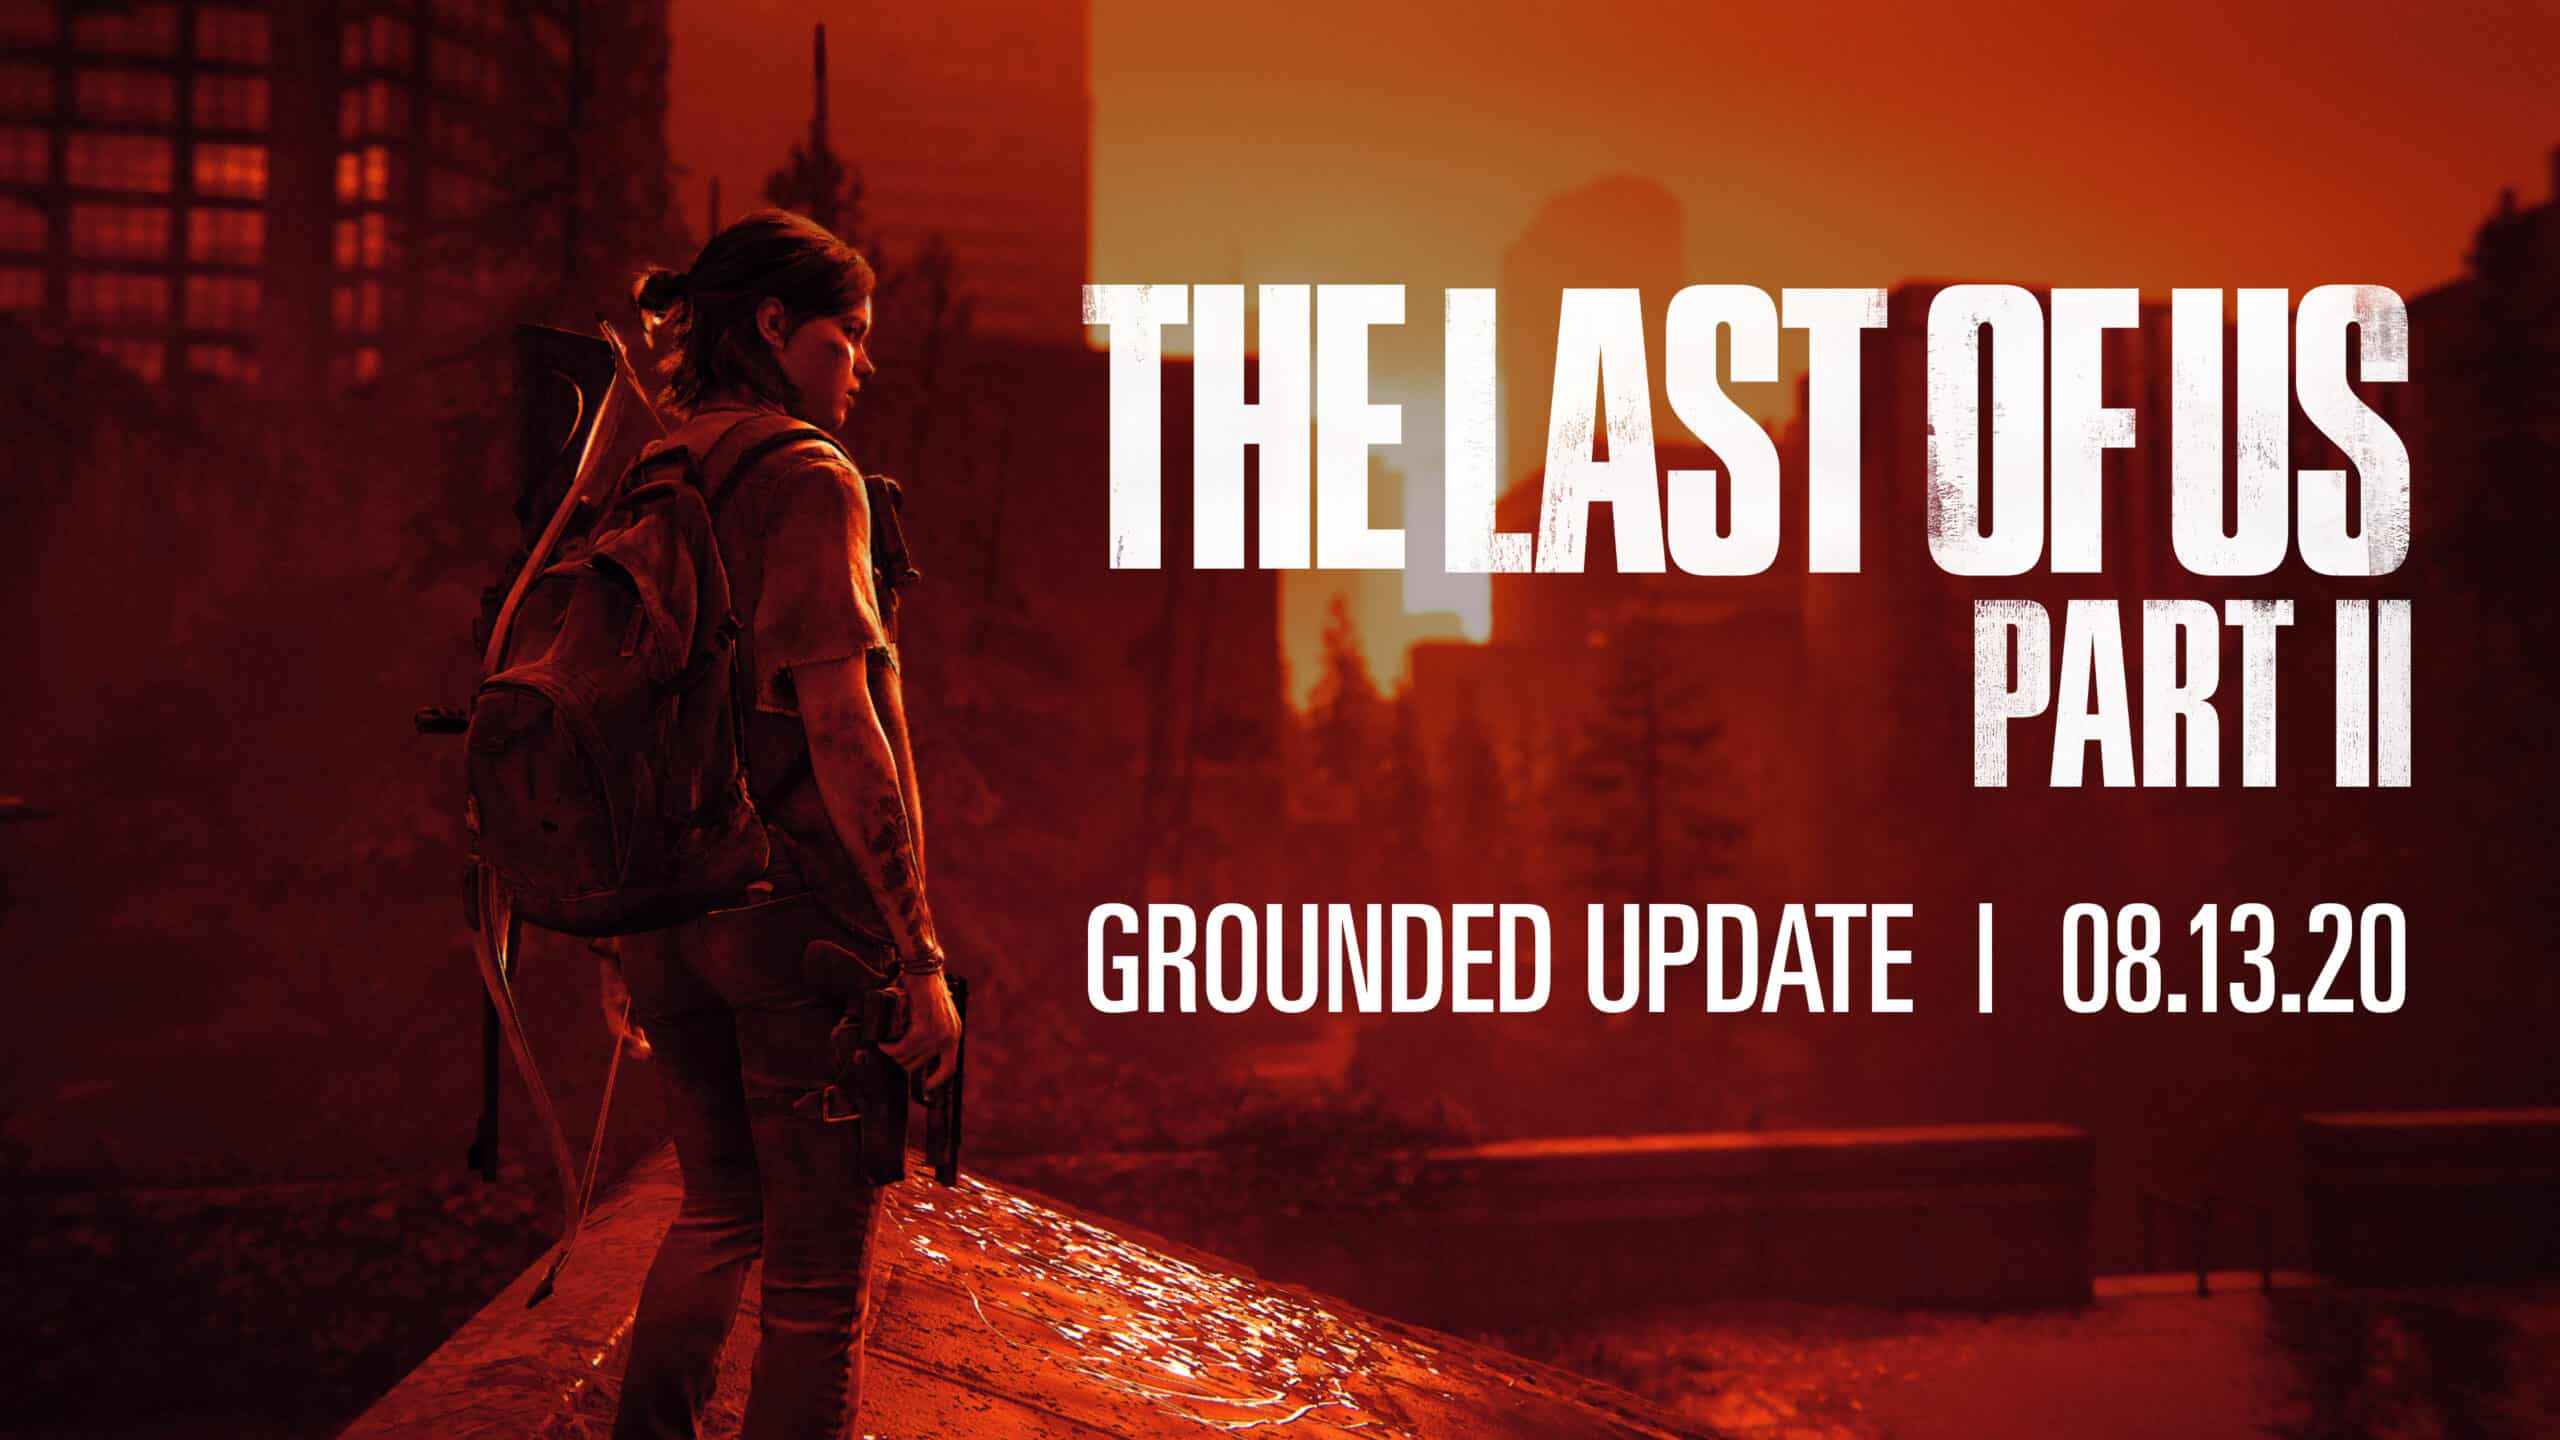 The last of us 2 grounded